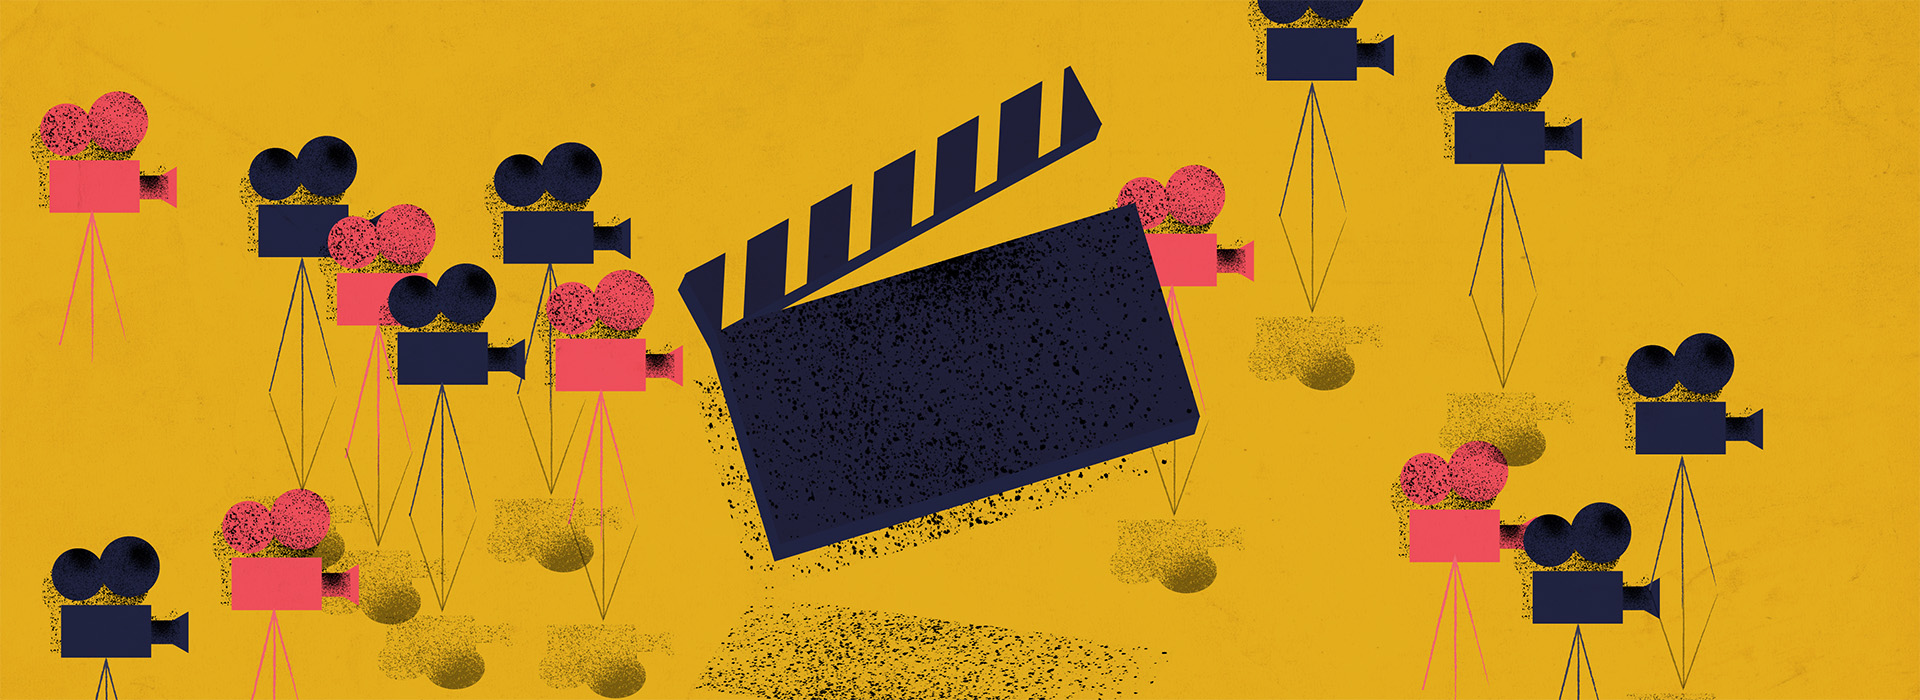 Top Video Content Marketing Trends to Watch